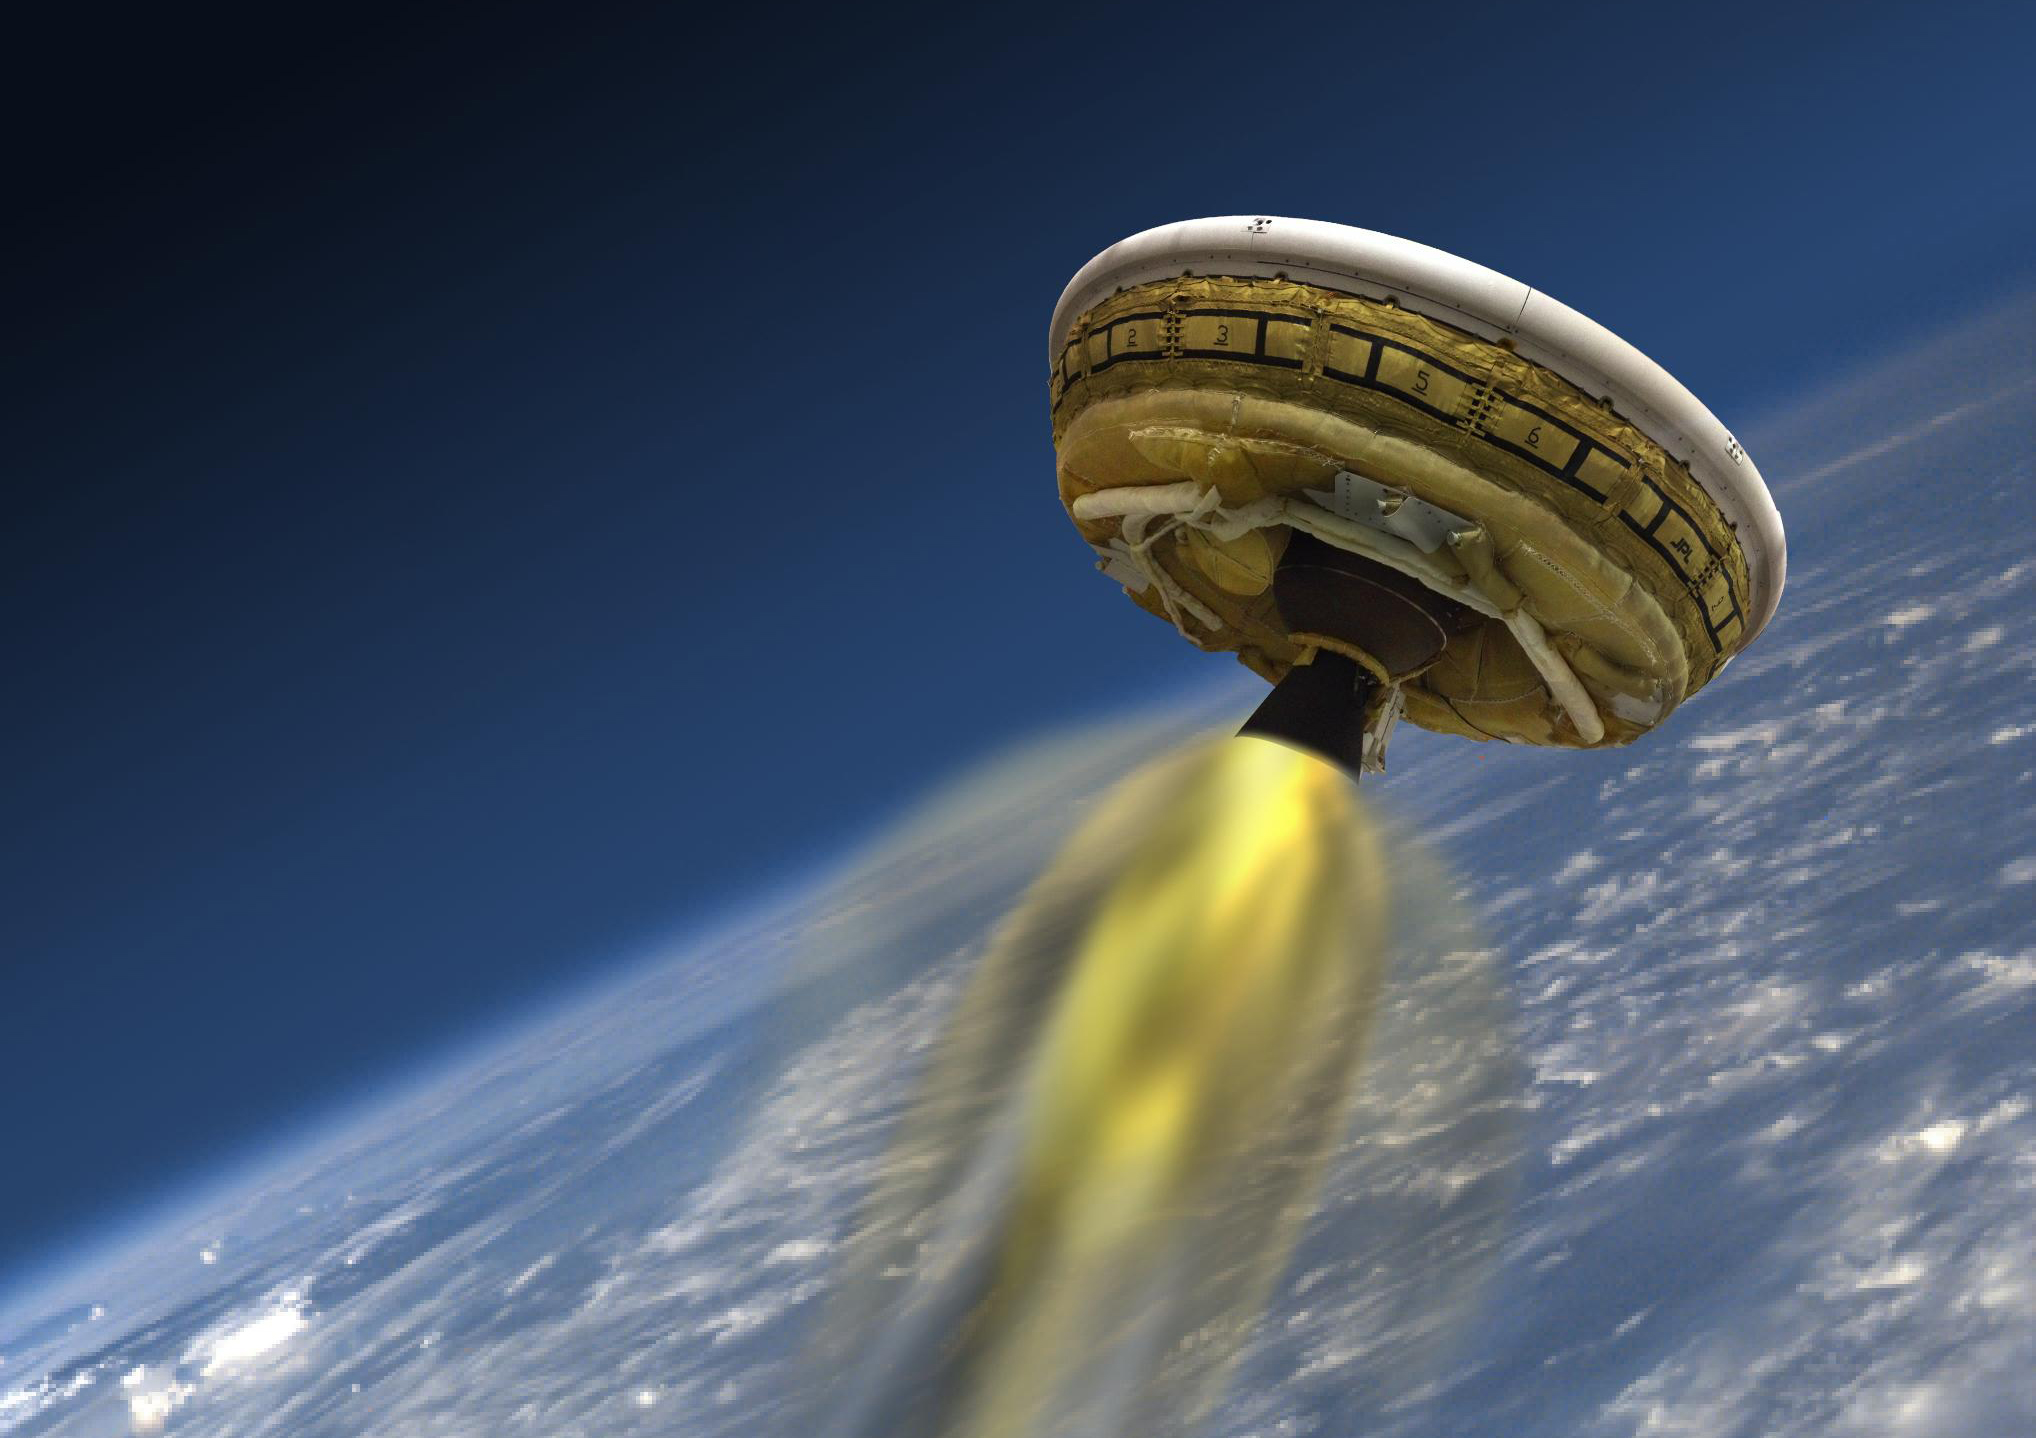 This artist's concept shows the test vehicle for NASA's Low-Density Supersonic Decelerator (LDSD), designed to test landing technologies for future Mars missions. A balloon will lift the vehicle to high altitudes, where a rocket will take it even higher, to the top of the stratosphere, at several times the speed of sound. Credit: NASA/JPL-Caltech